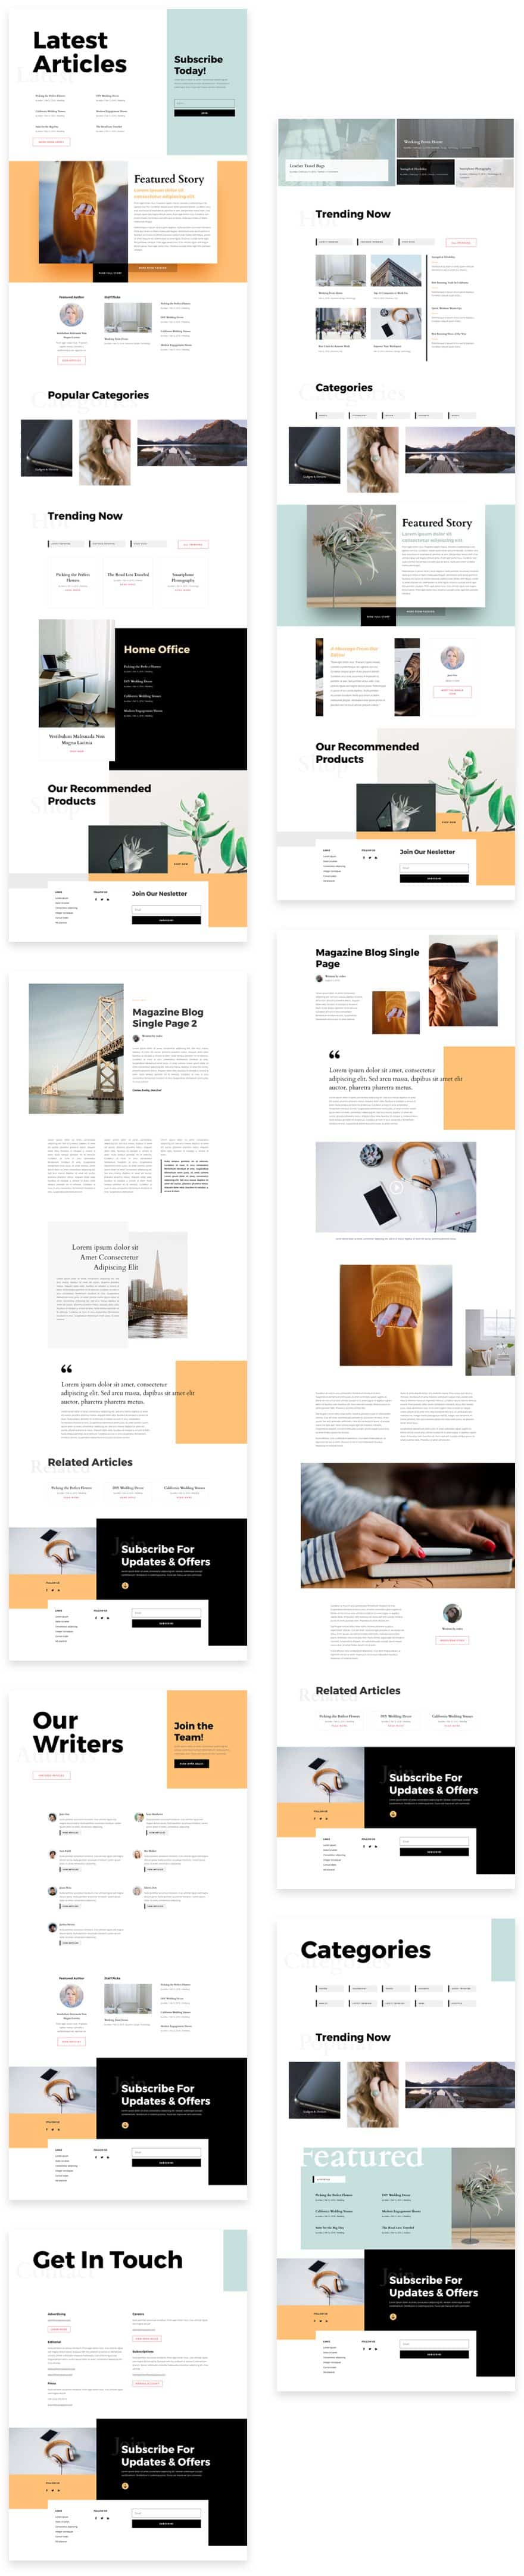 Magazine Divi Layout Pack